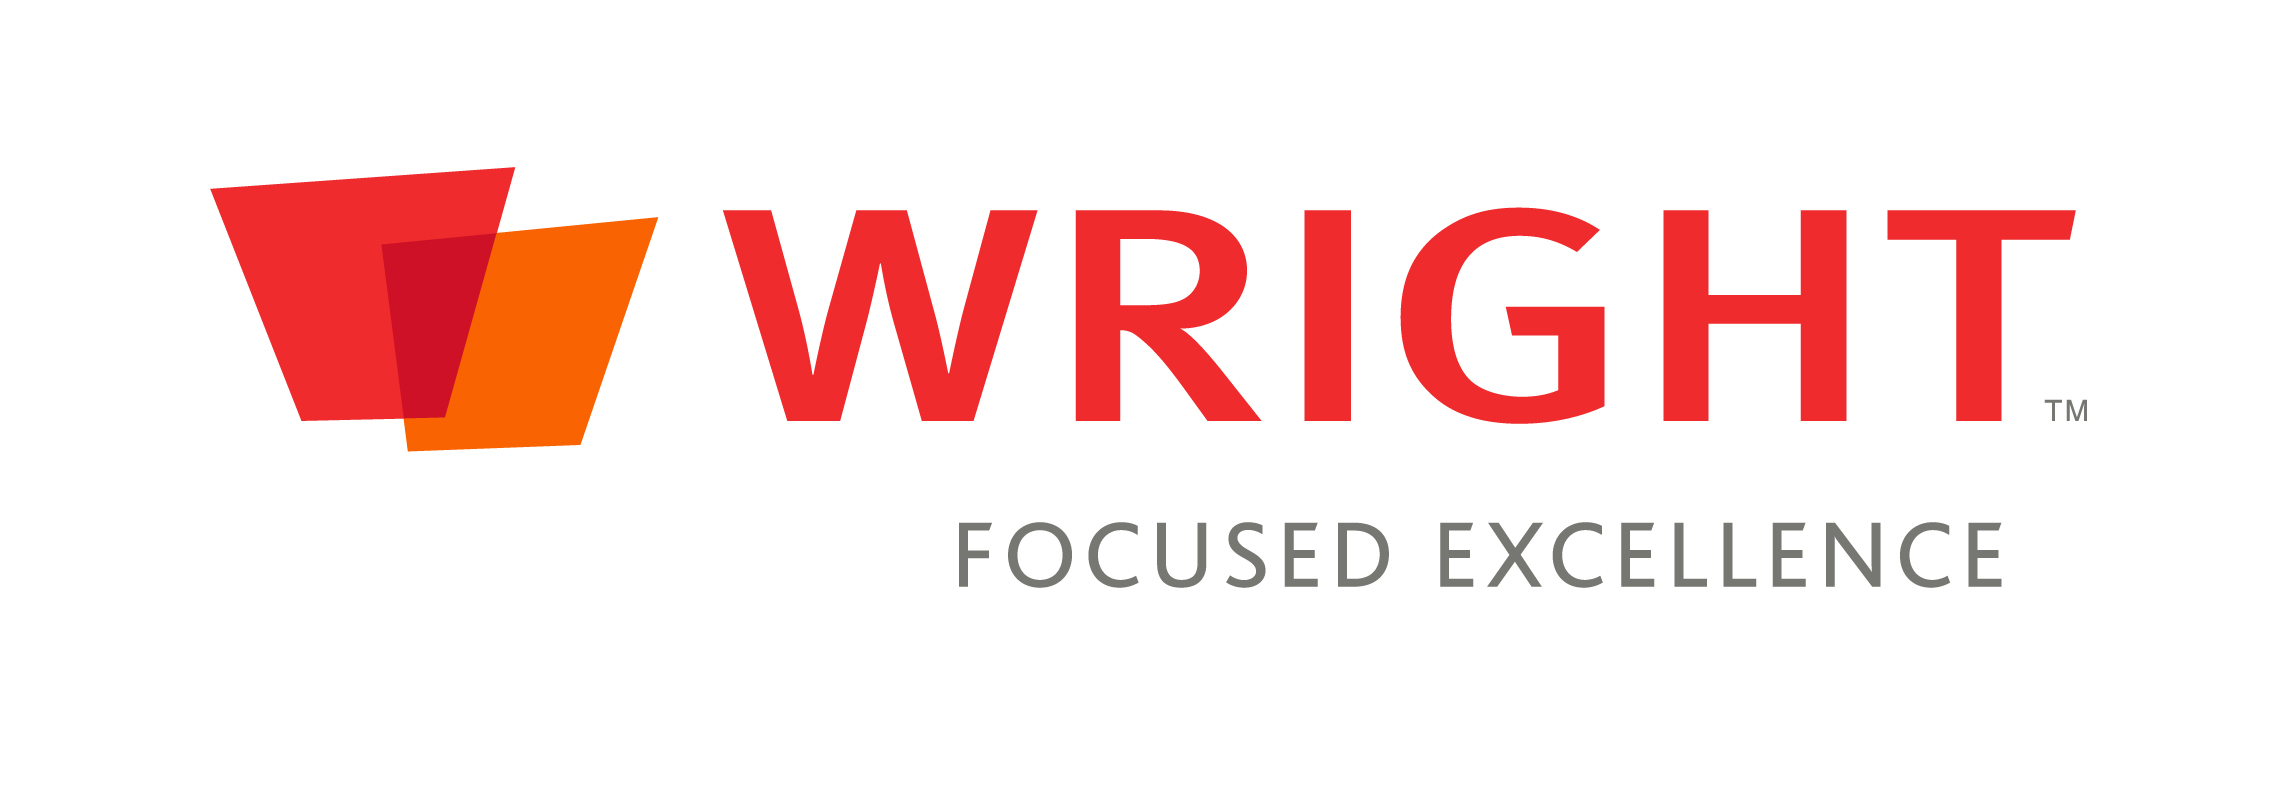 Wright logo - Stealing Share